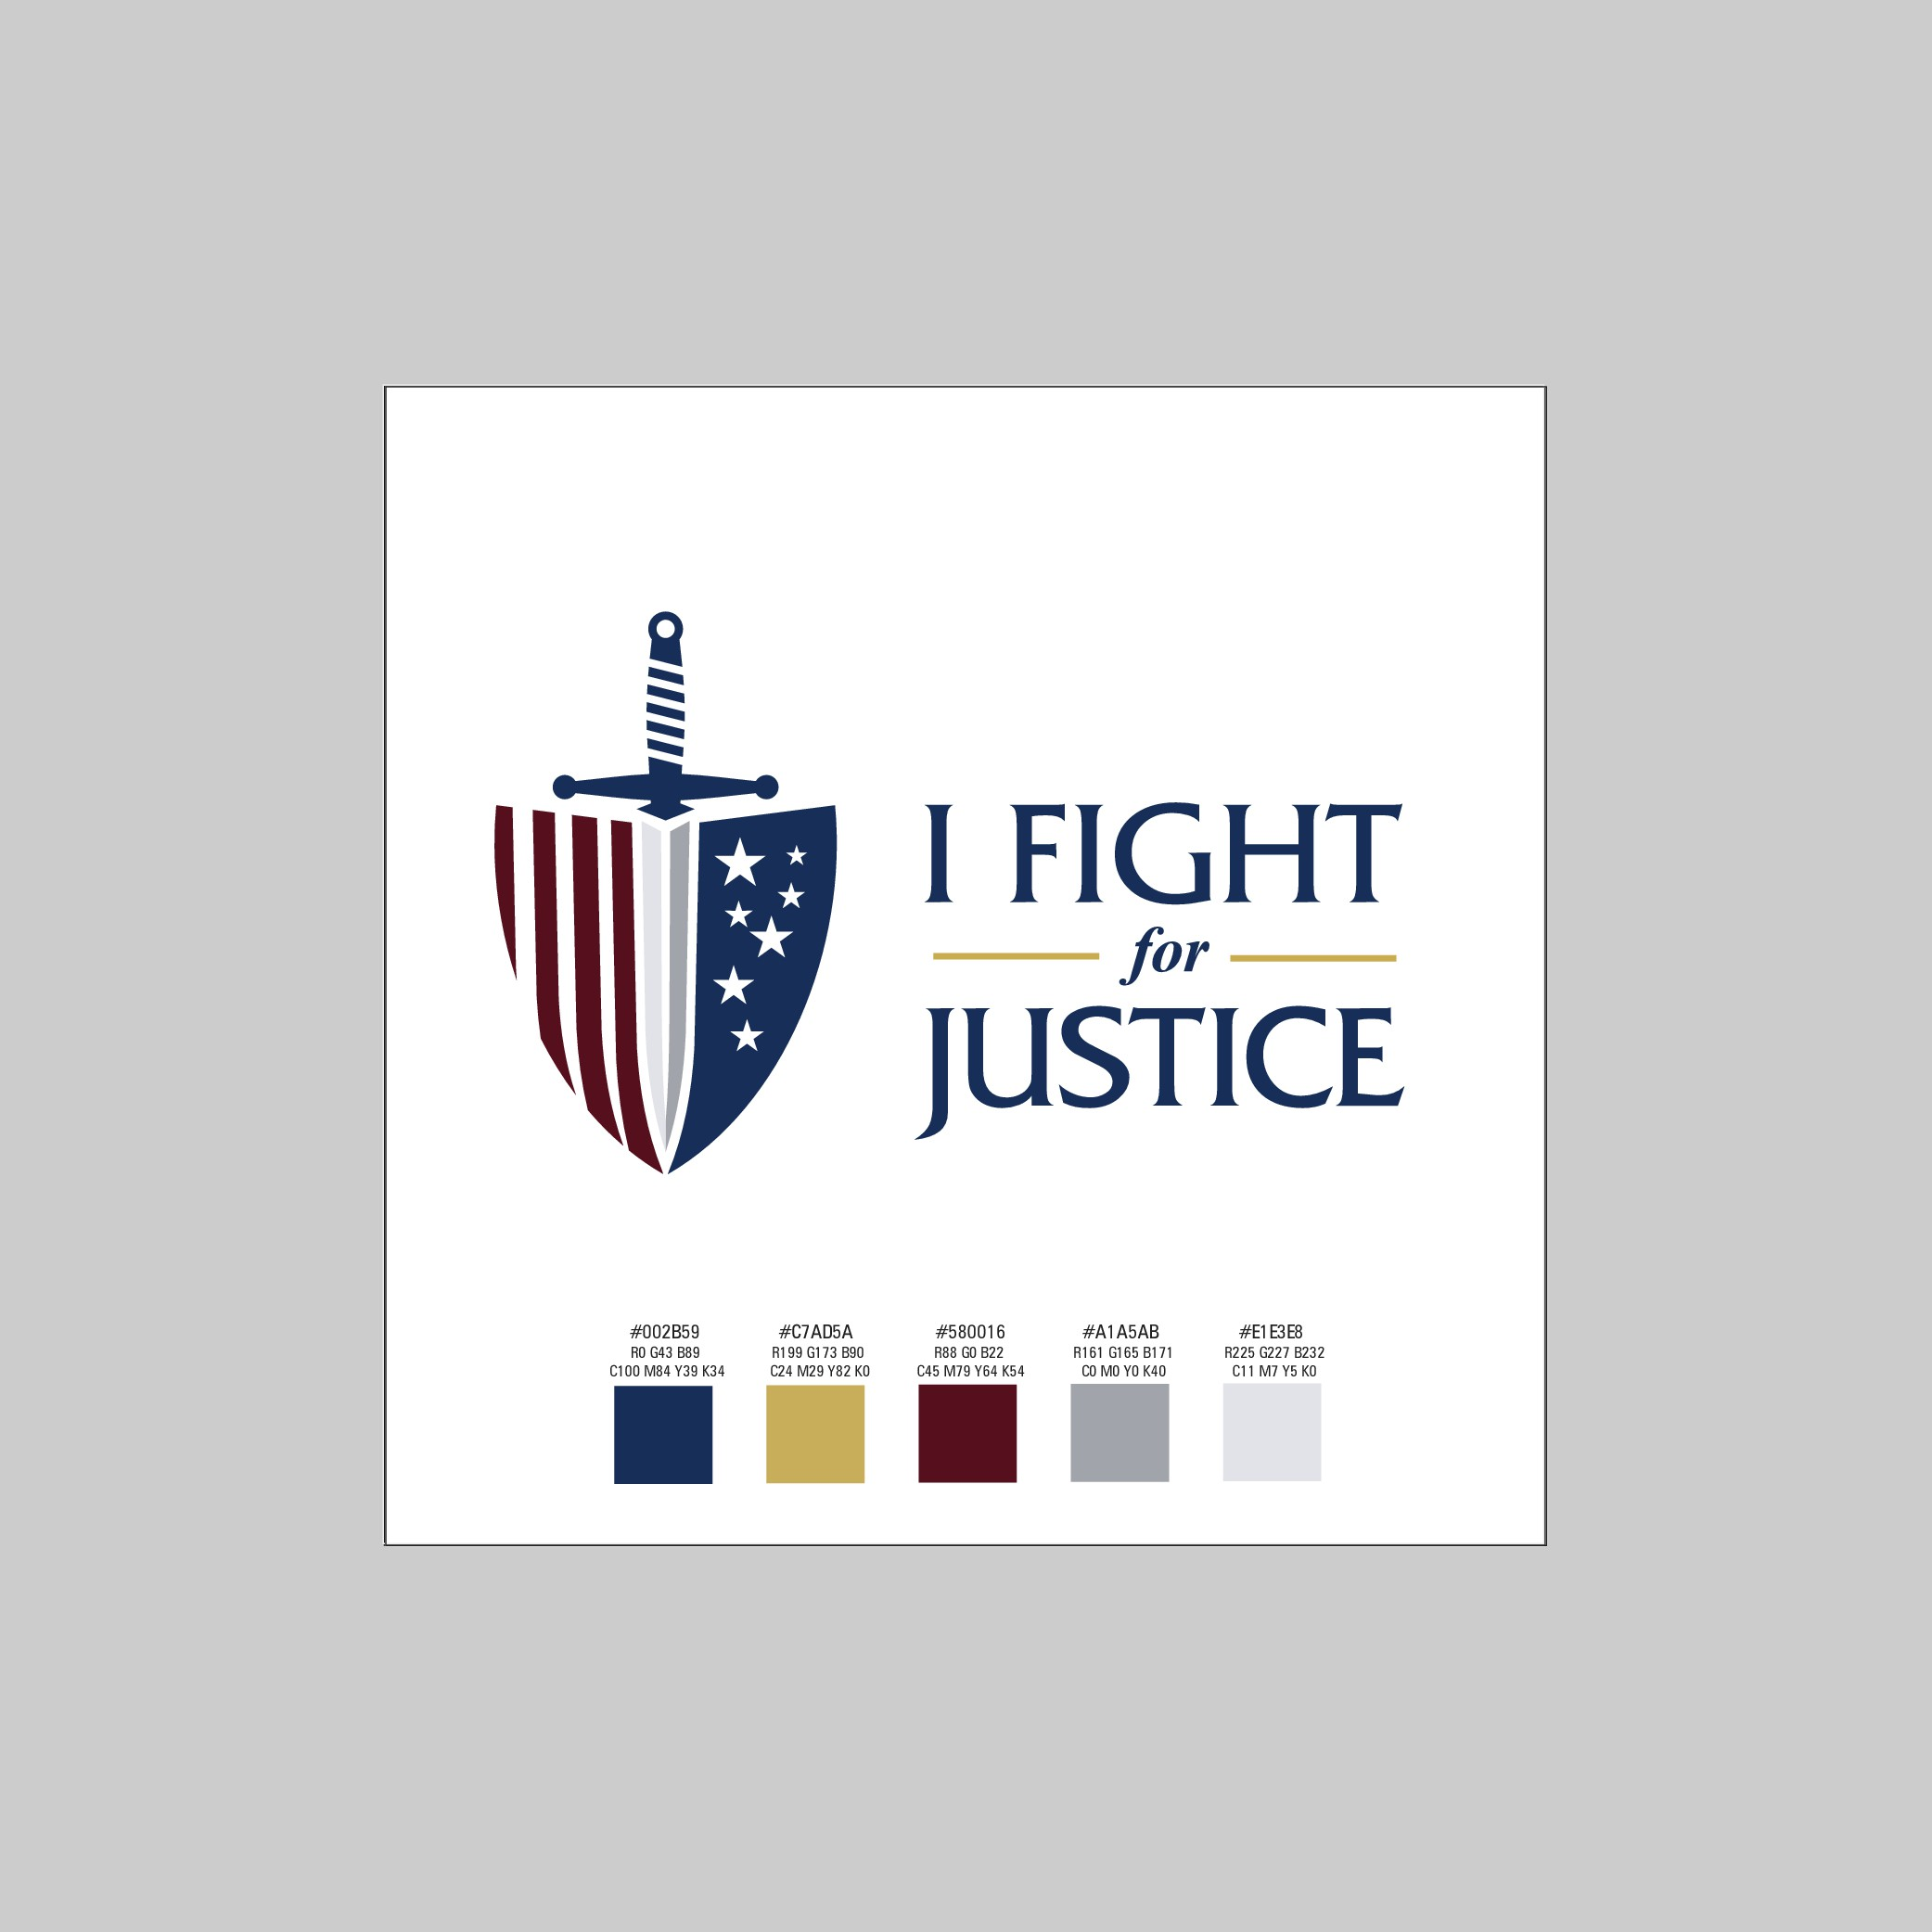 Lawyer's group needs logo and campaign concept for fundraising